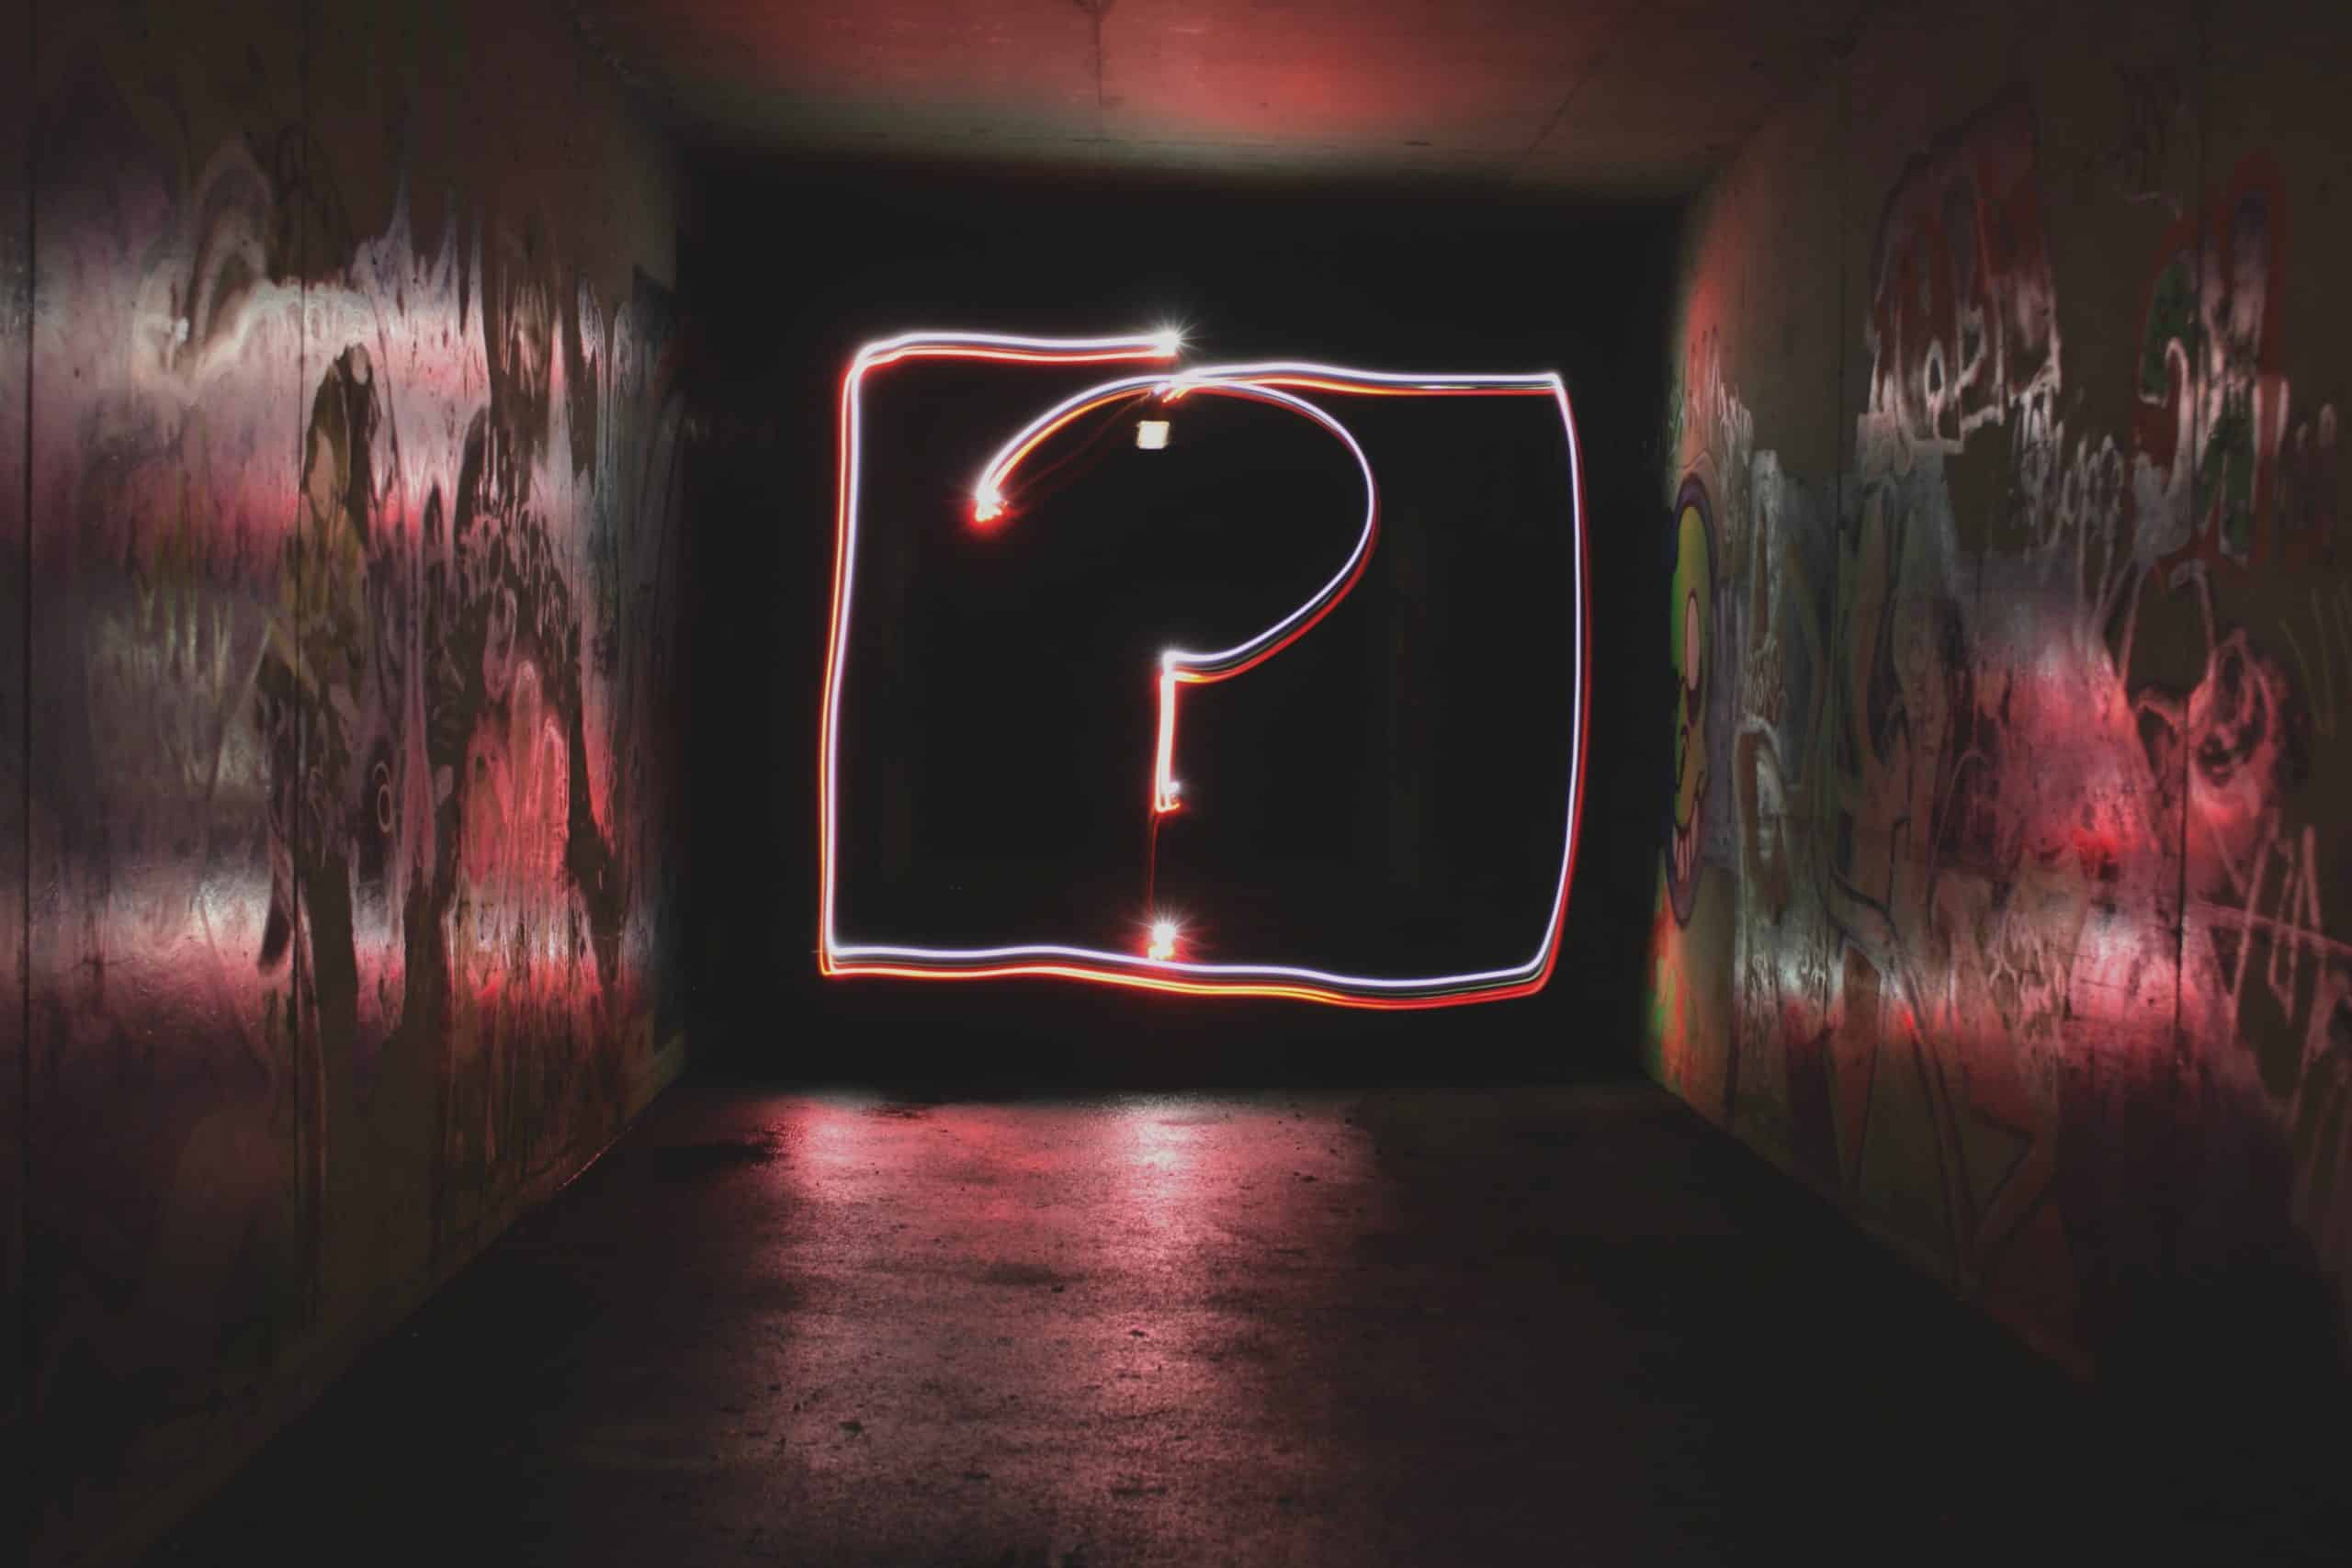 A question mark surrounded by a neon pink box with light illuminating the sides.